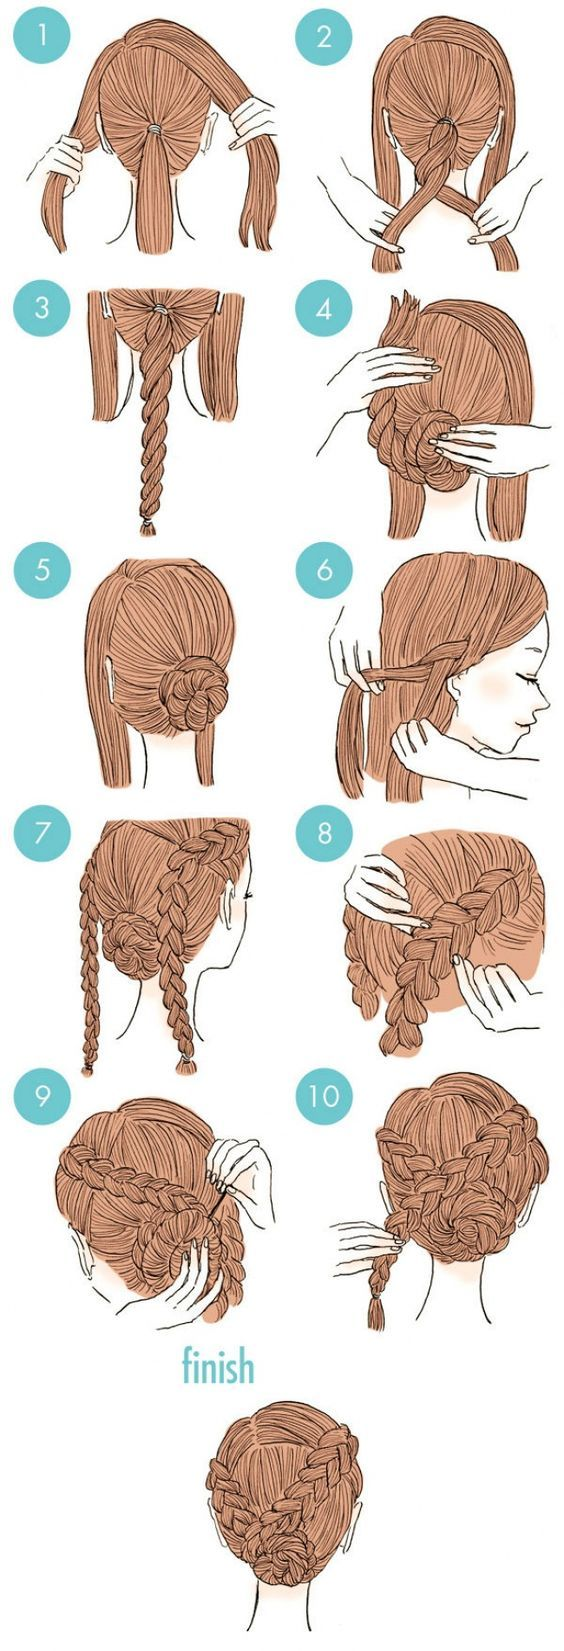 Beleza japonesa cortes de cabelo and sentimentos on pinterest for Inventions we need but don t have